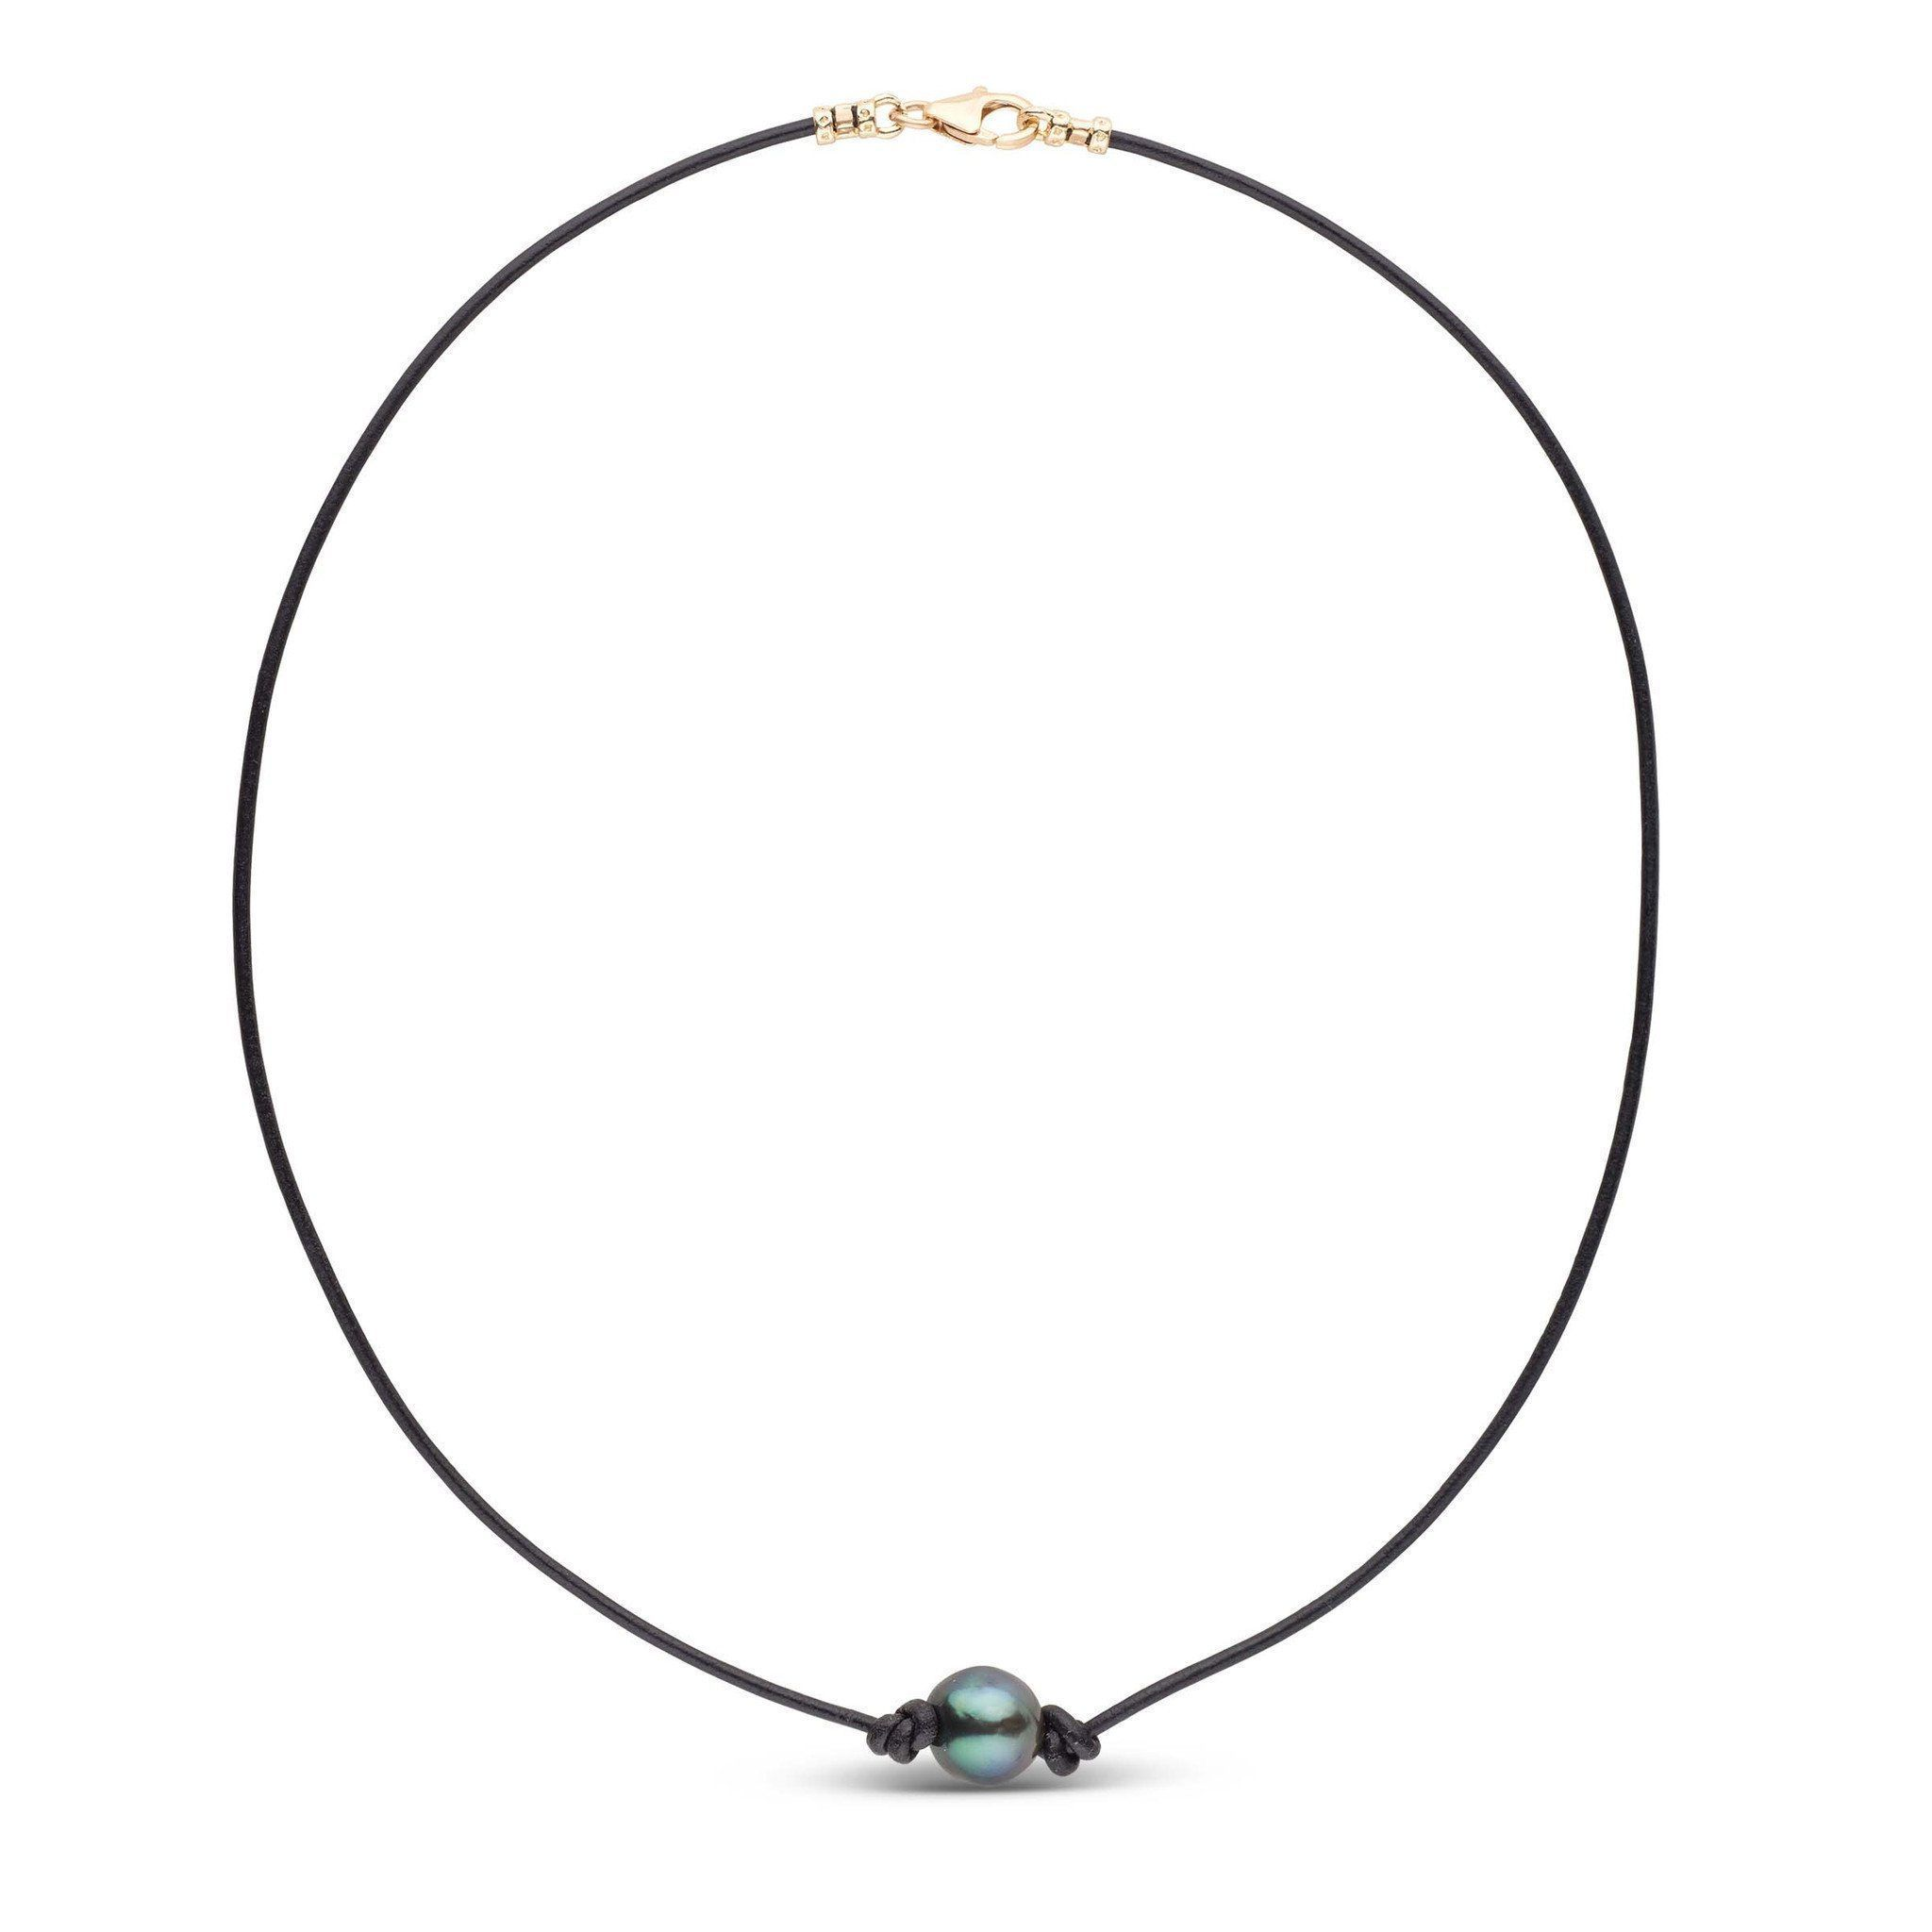 Tahitian Baroque Pearl Knotted Leather Necklace